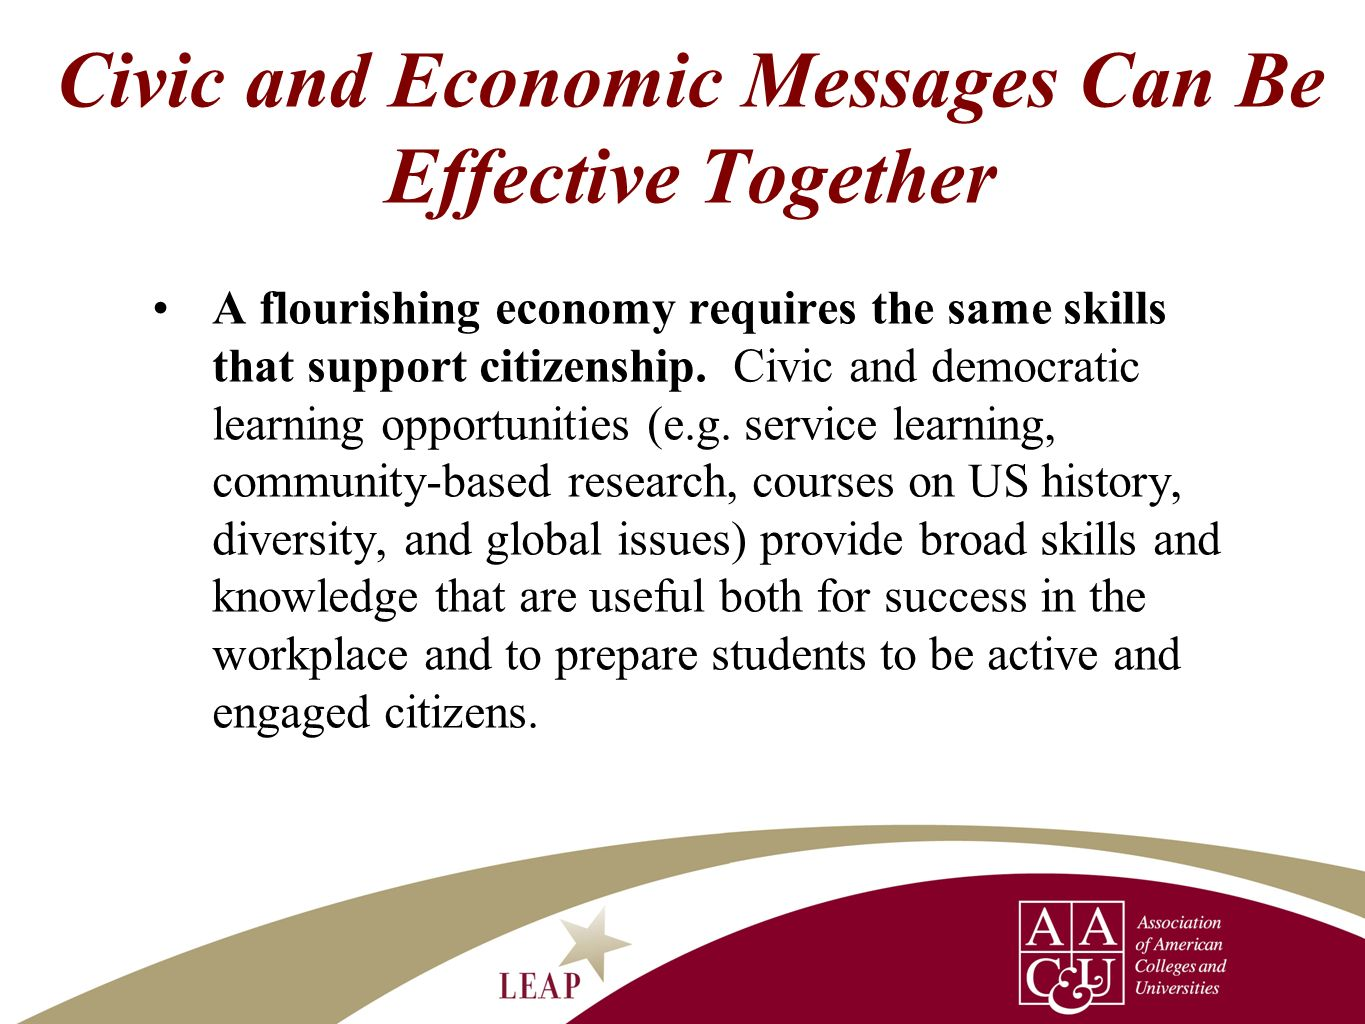 Civic and Economic Messages Can Be Effective Together A flourishing economy requires the same skills that support citizenship. Civic and democratic le